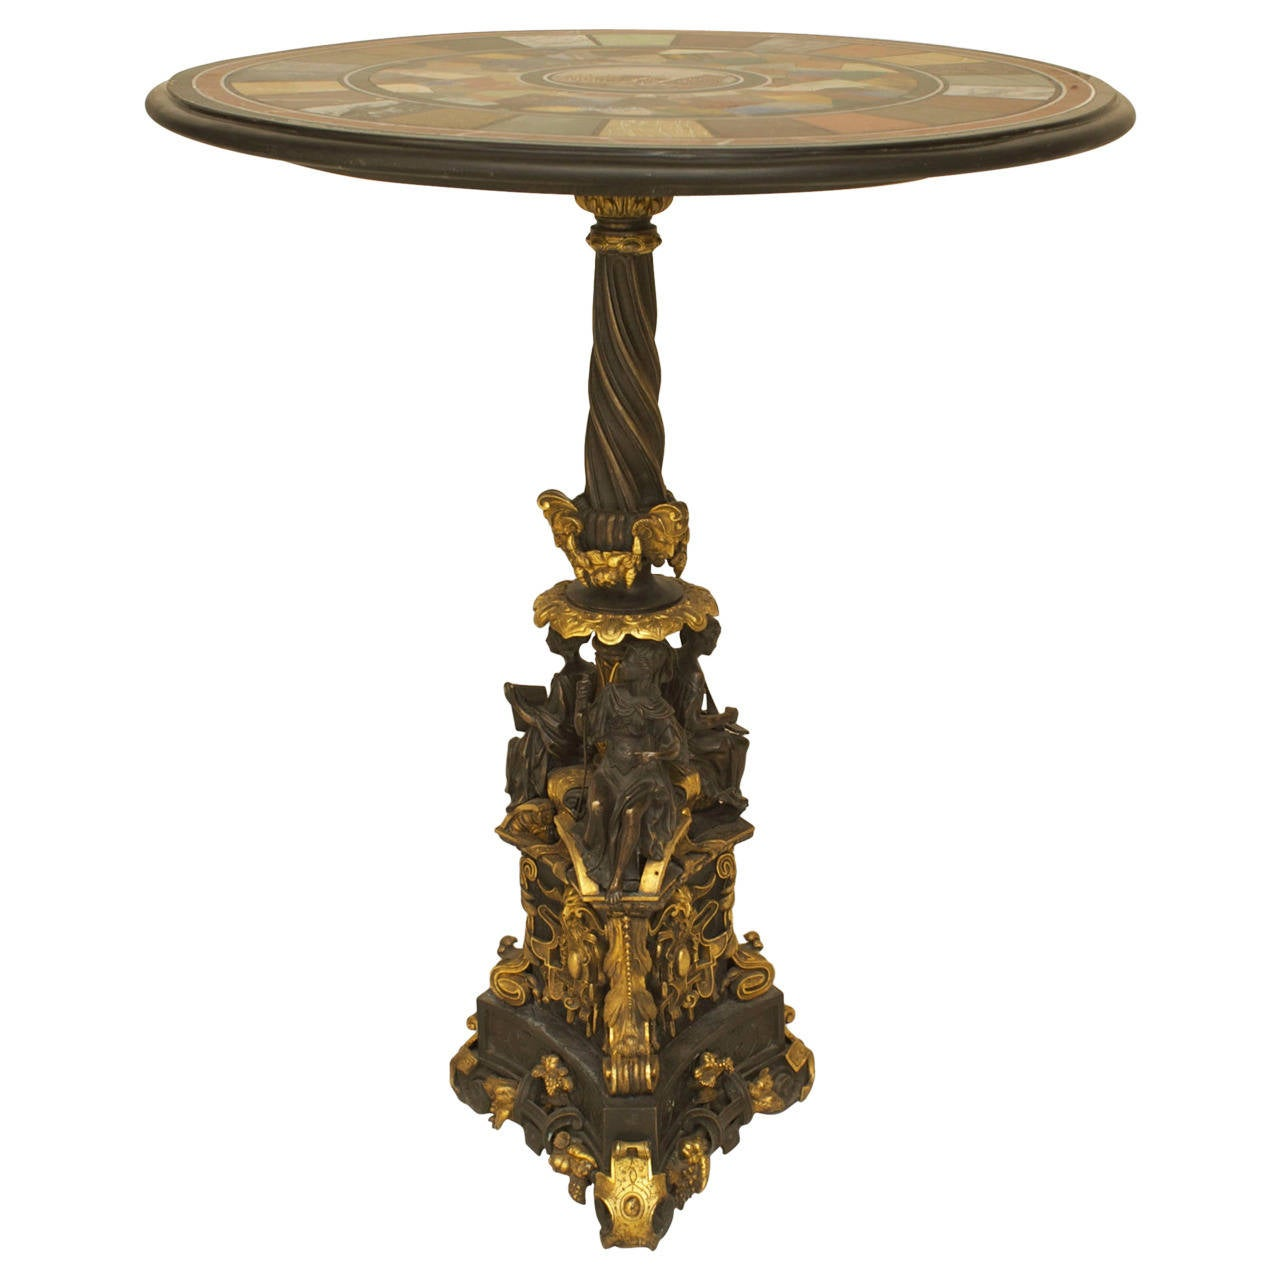 Important Italian Neoclassical Micromosaic-Top Table on an Ormolu Base